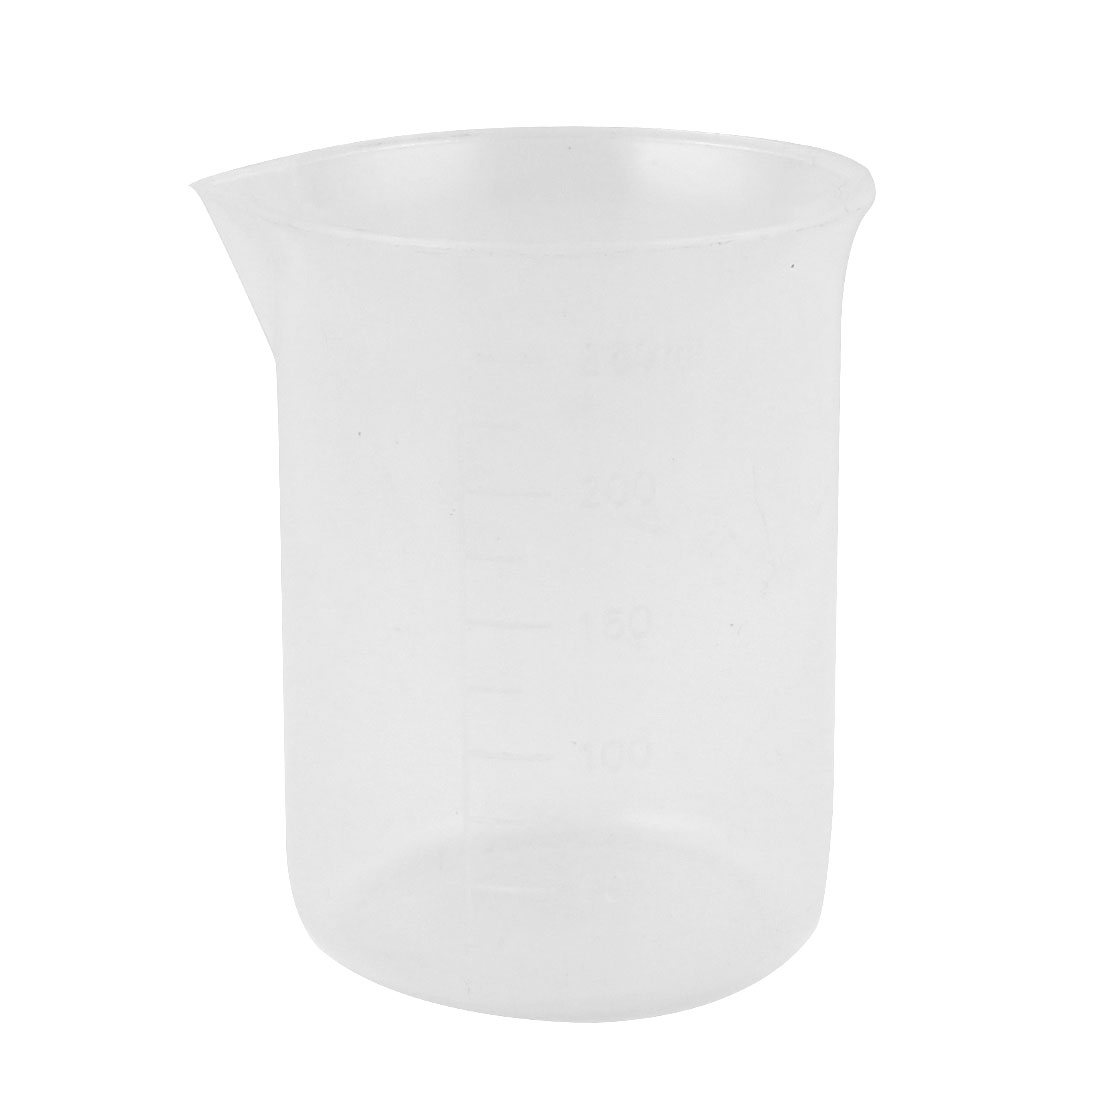 Lab Laboratory Experiment Chemistry Graduated Clear Plastic Water Liquid Measuring Container Testing Beaker 250mL